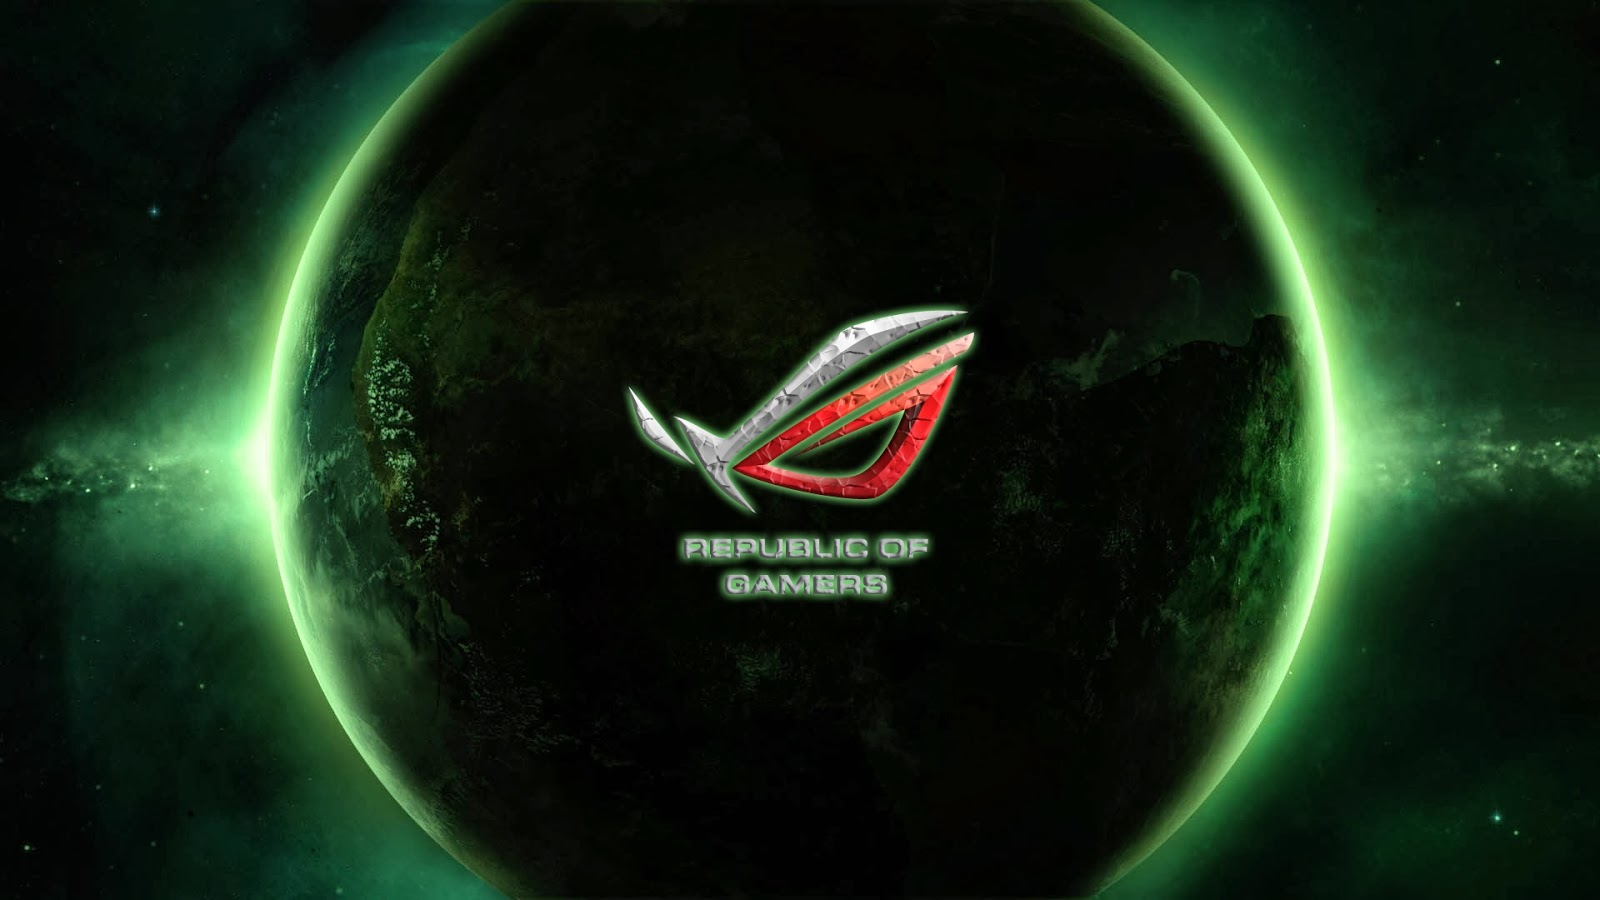 Free Download Asu Republic Of Gamers Logo Brand Space Planet